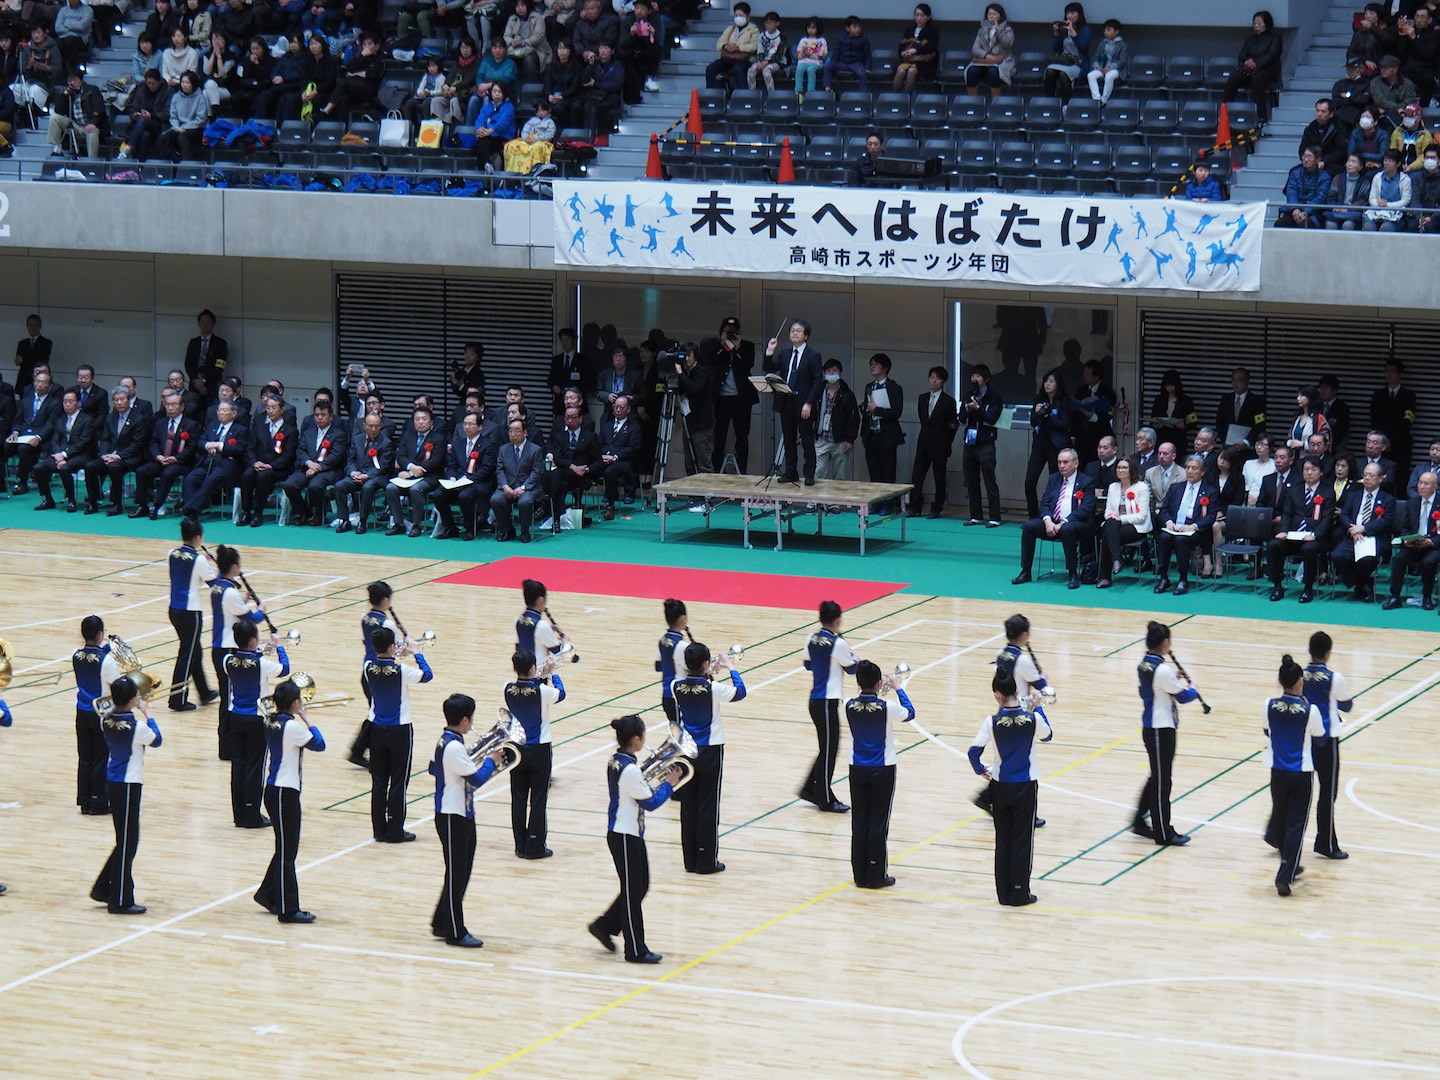 Takasaki Arena Opening Ceremony<br />Performed by<br />The Tsukasawa Junior High School Marching Band 3